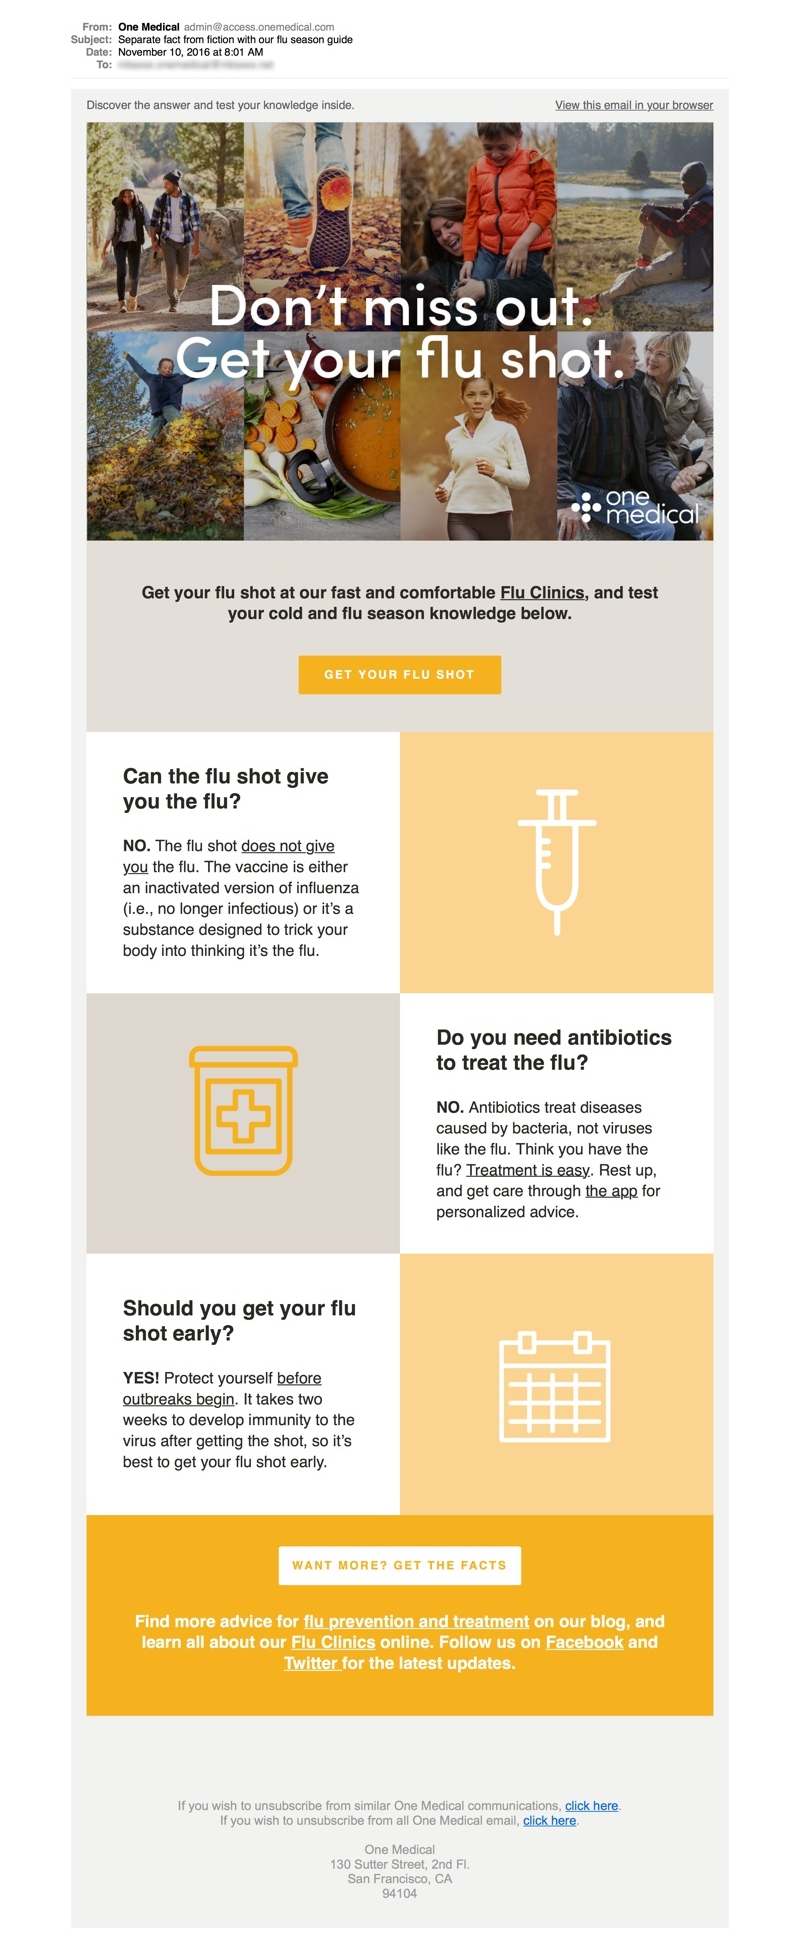 communication in healthcare_email marketing idea